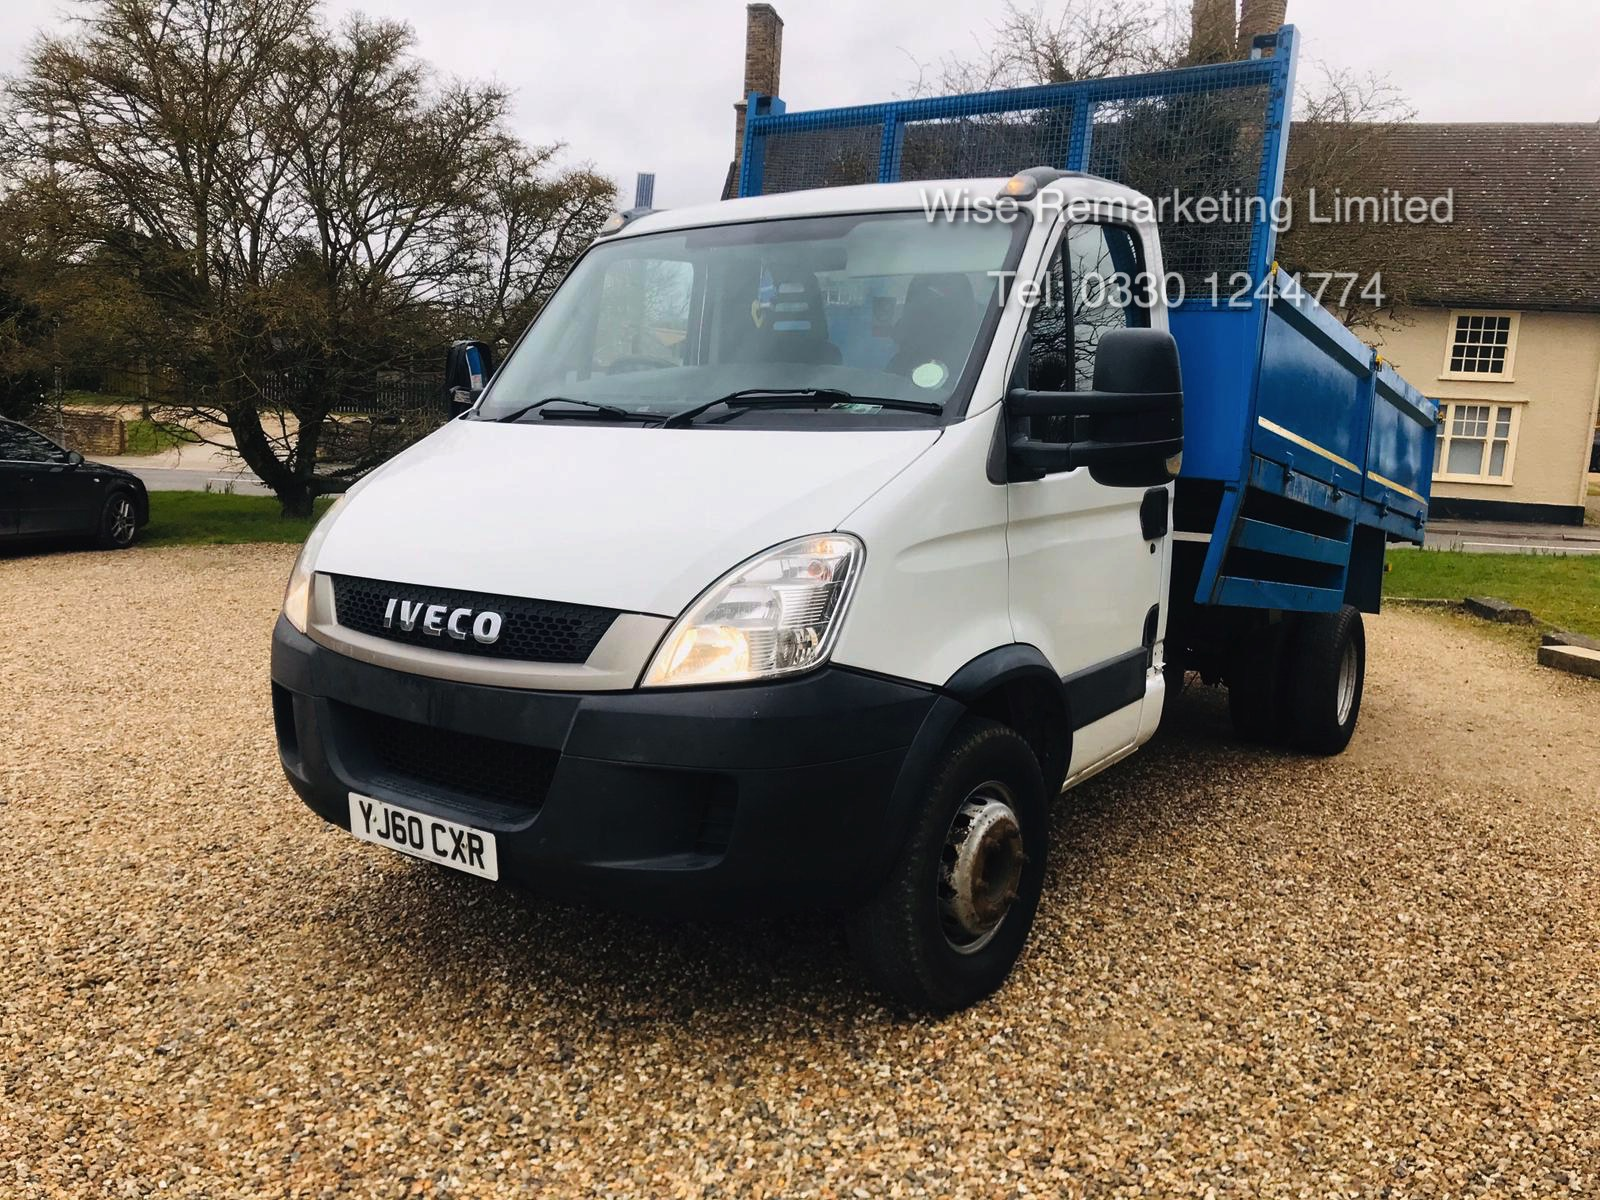 Iveco Daily 3.0 TD 60C18 Tipper (Twin Wheeler) - 6 Speed - 2011 Model - 1 Keeper SAVE 20% NO VAT